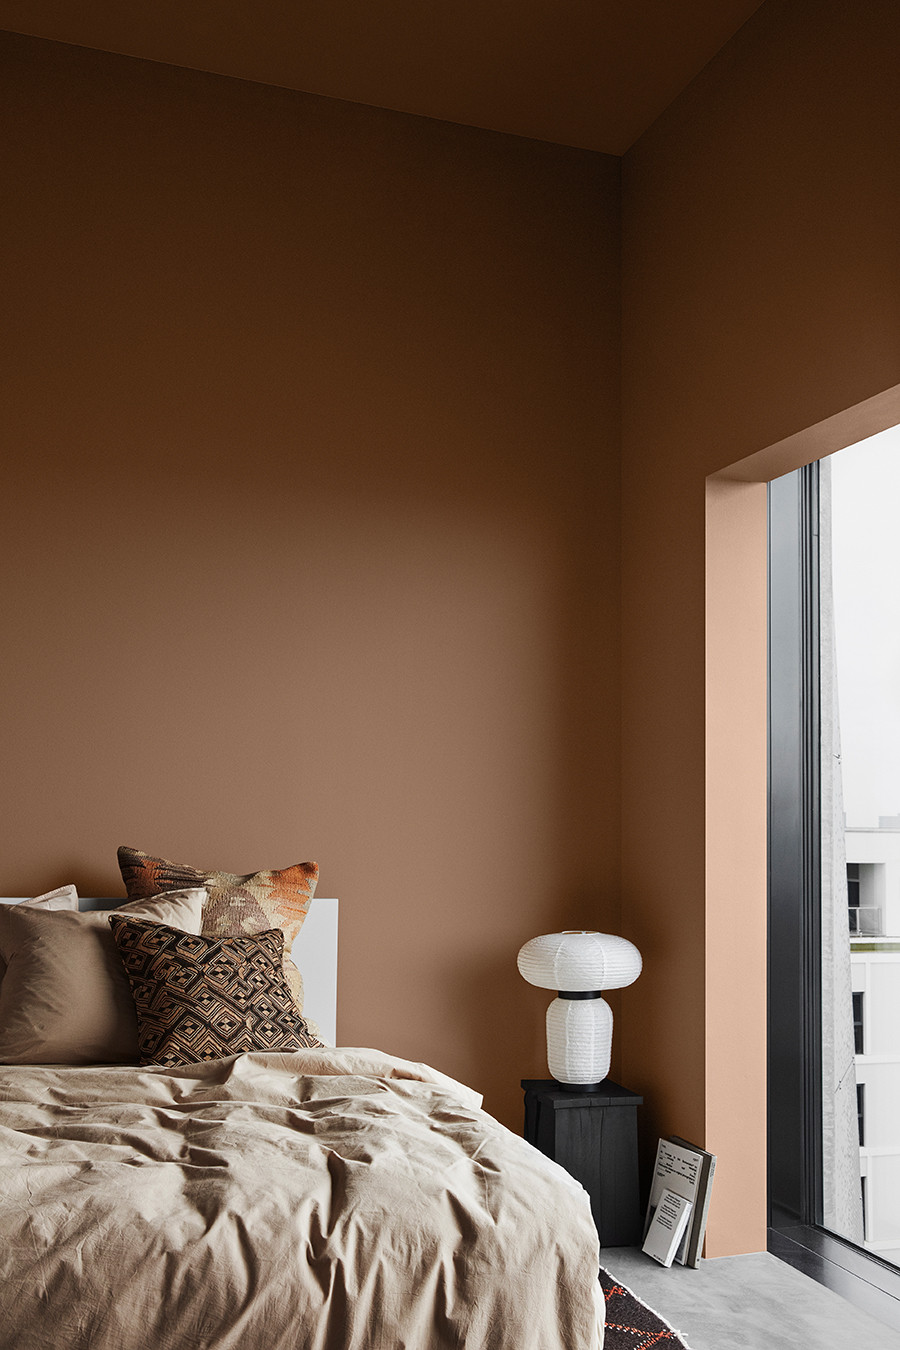 Paint Colors For Bedroom 2020  The Color Trends for 2020 Are Inspired by Nature — THE